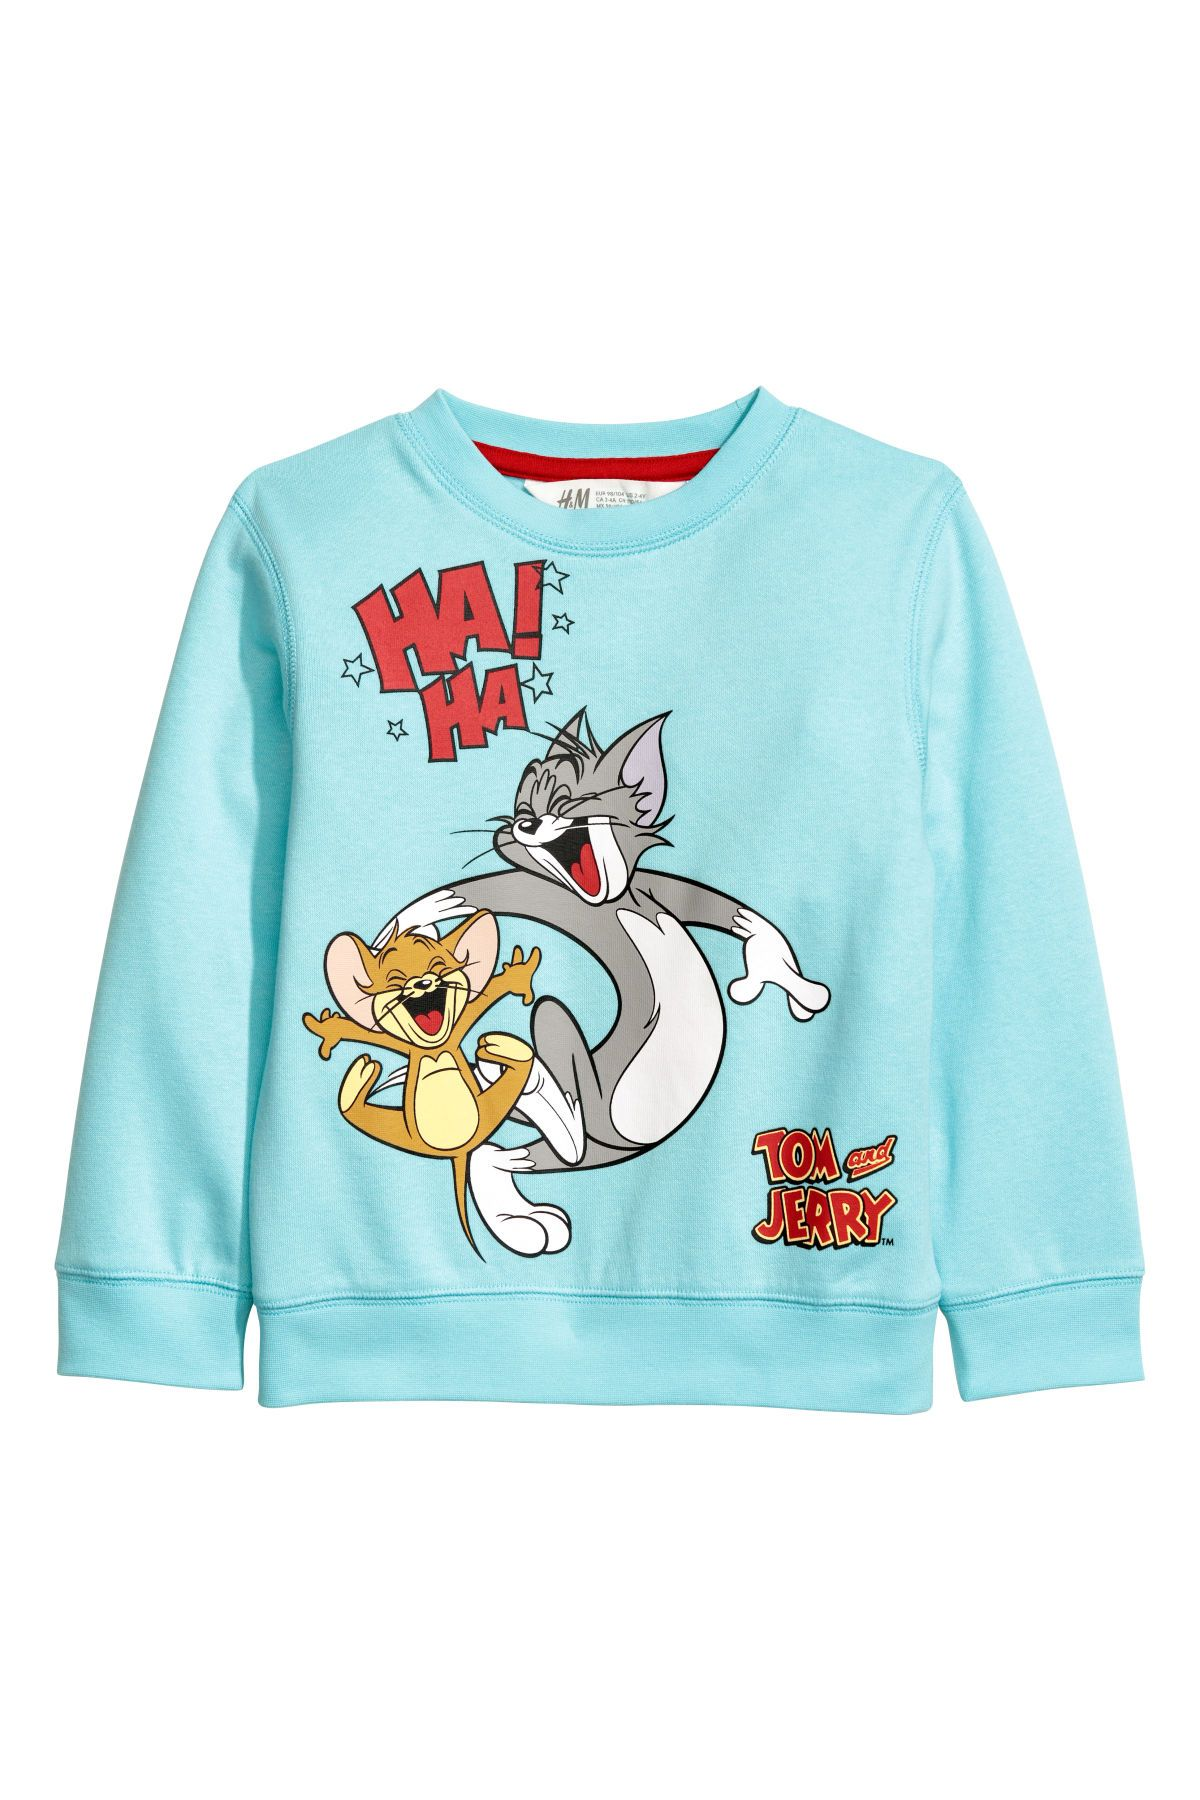 Turquoise Tom And Jerry Sweatshirt With A Printed Design Ribbing At Neckline Cuffs And Hem Soft Brushed Inside Kids Outfits Tomboy Shirts Sweatshirts [ 1800 x 1200 Pixel ]